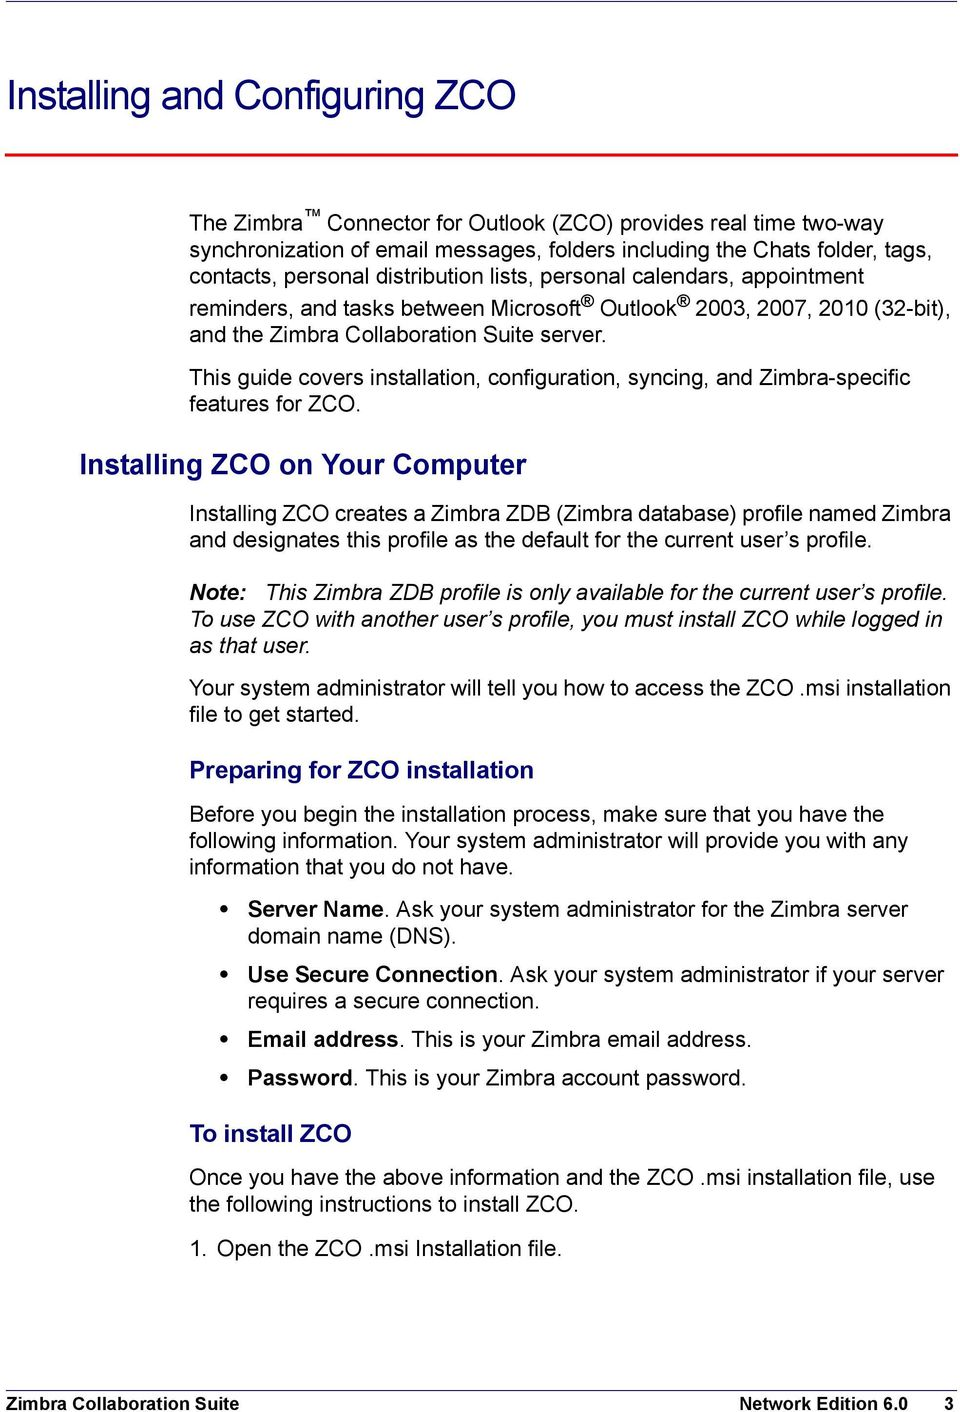 This guide covers installation, configuration, syncing, and Zimbra-specific features for ZCO.